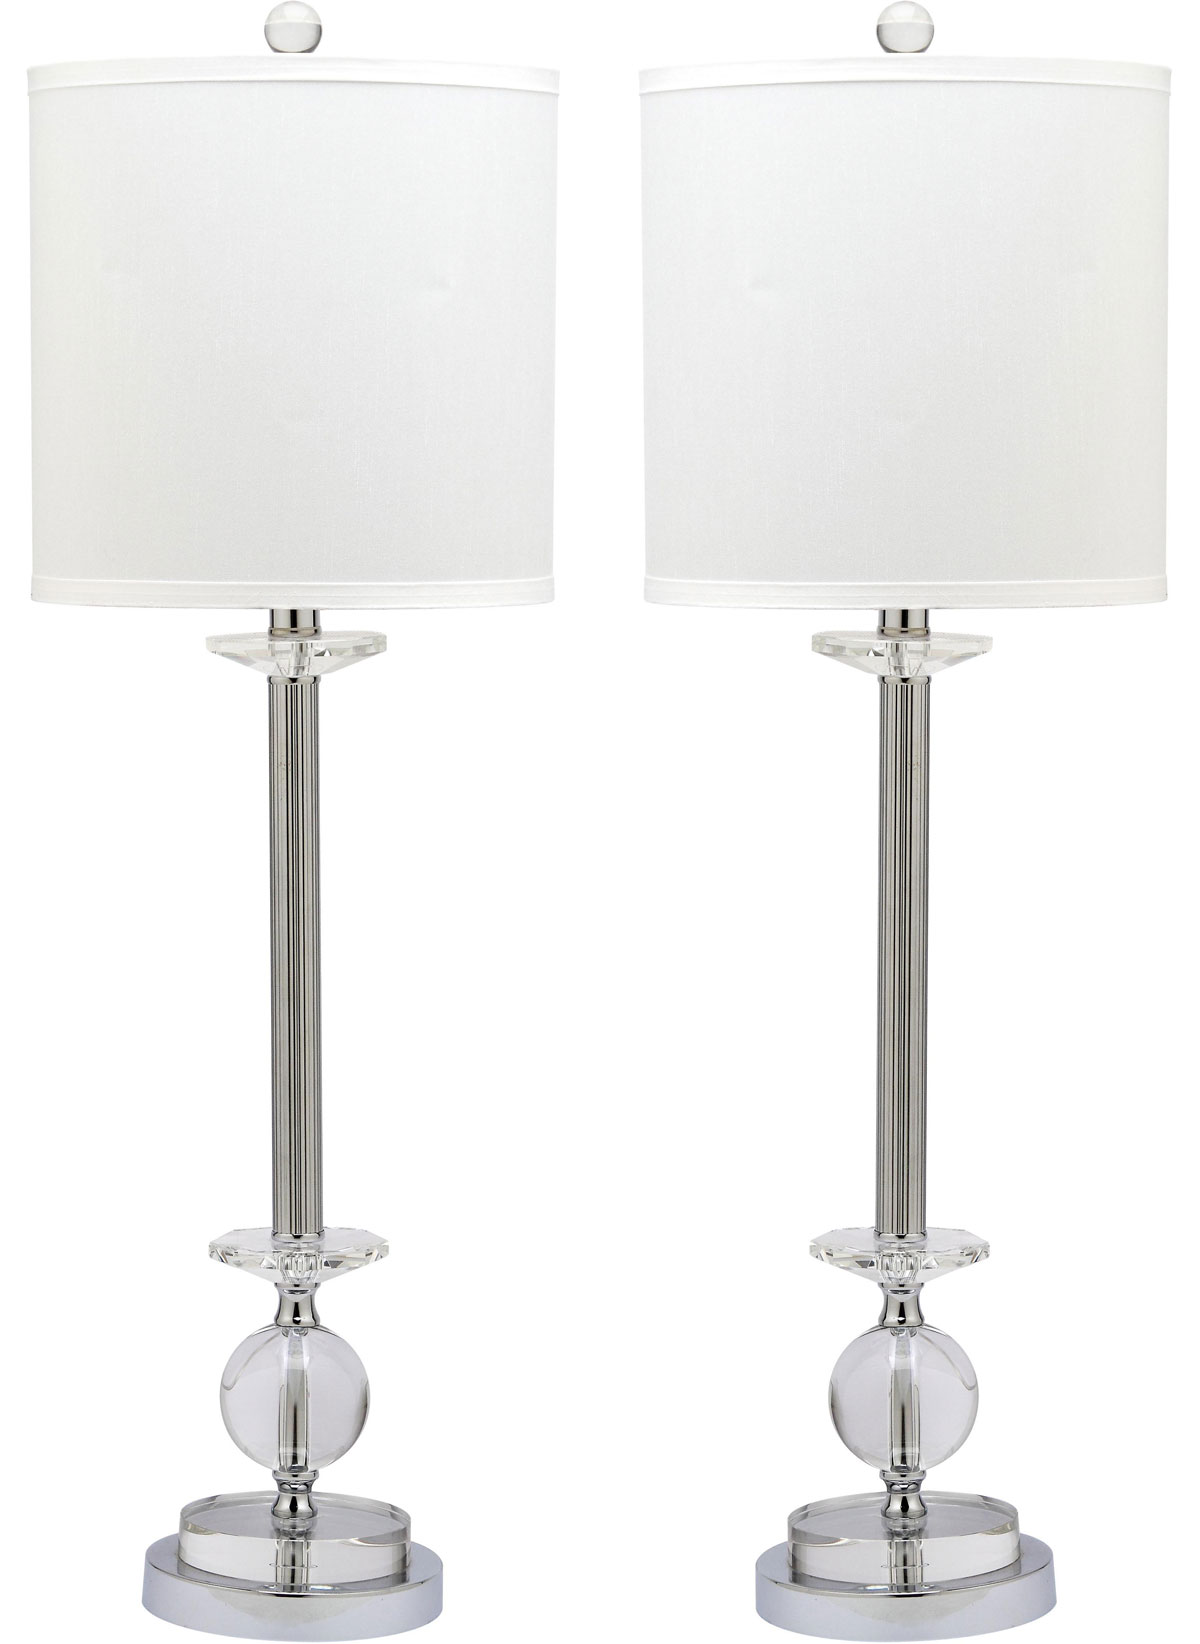 decoration new for home with lamp ideas small candlestick